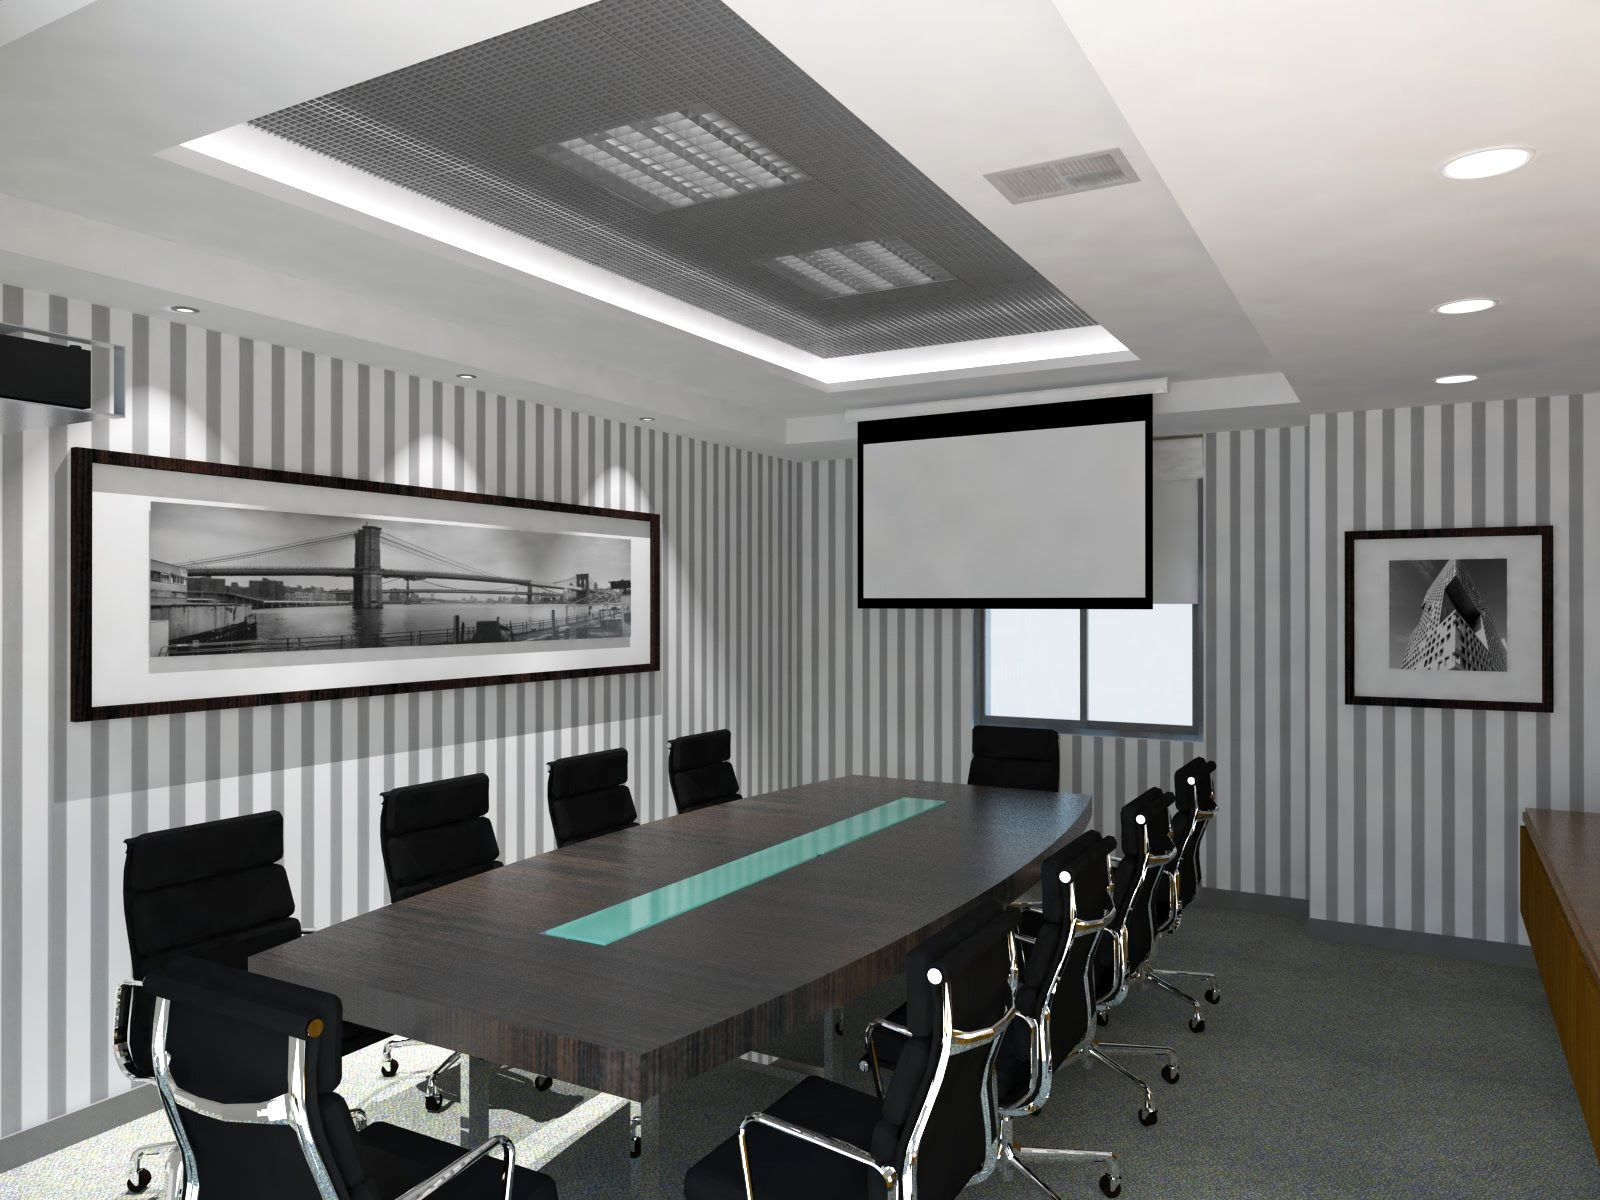 Oniria sala de reuniones oficinas ideas pinterest for Ideas oficinas modernas